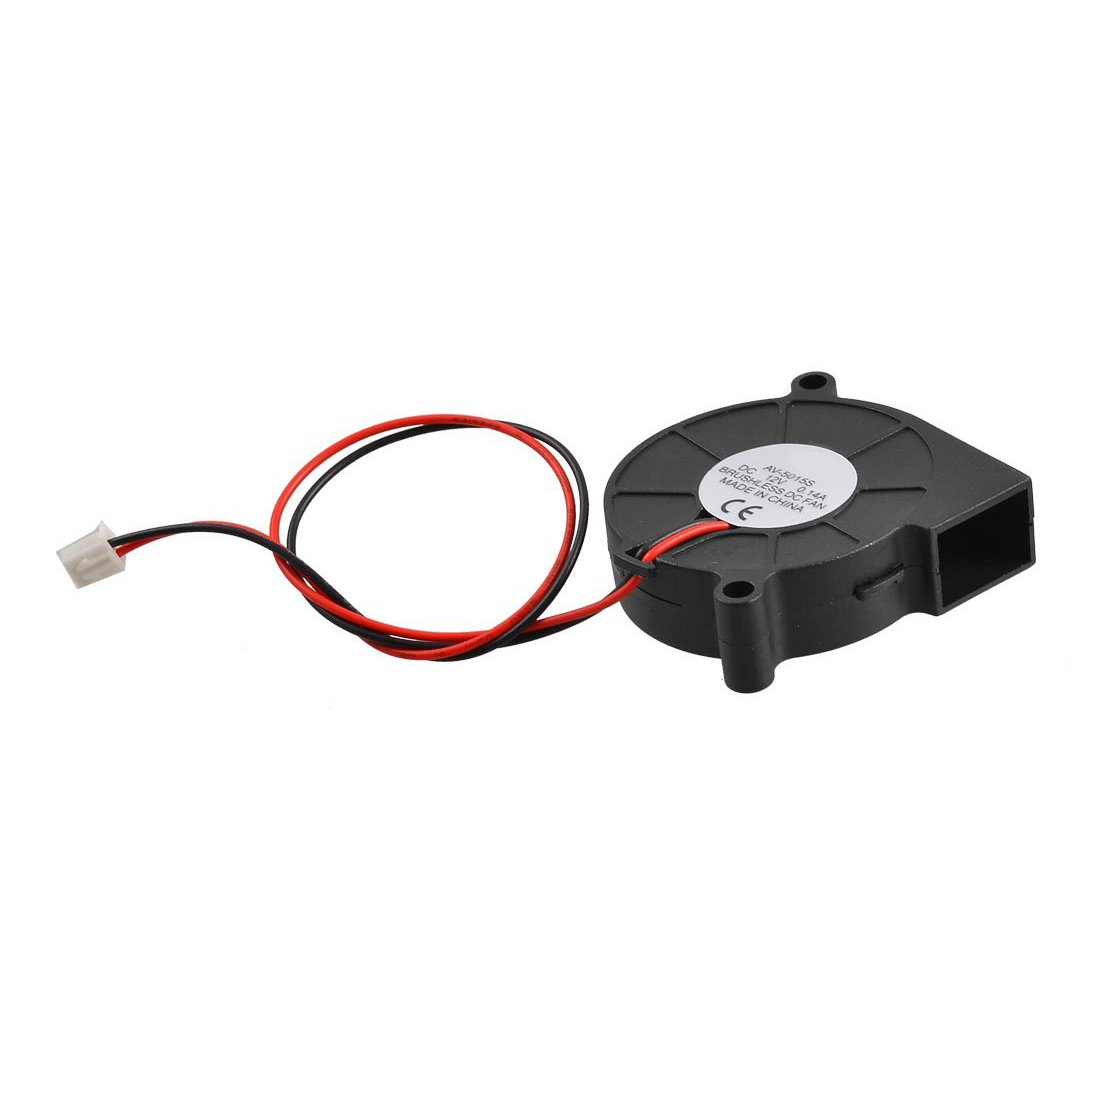 Amazon.com: Black Brushless DC Cooling Blower Fan 5015S 12V 0.14A 50mm x 15mm: Computers & Accessories